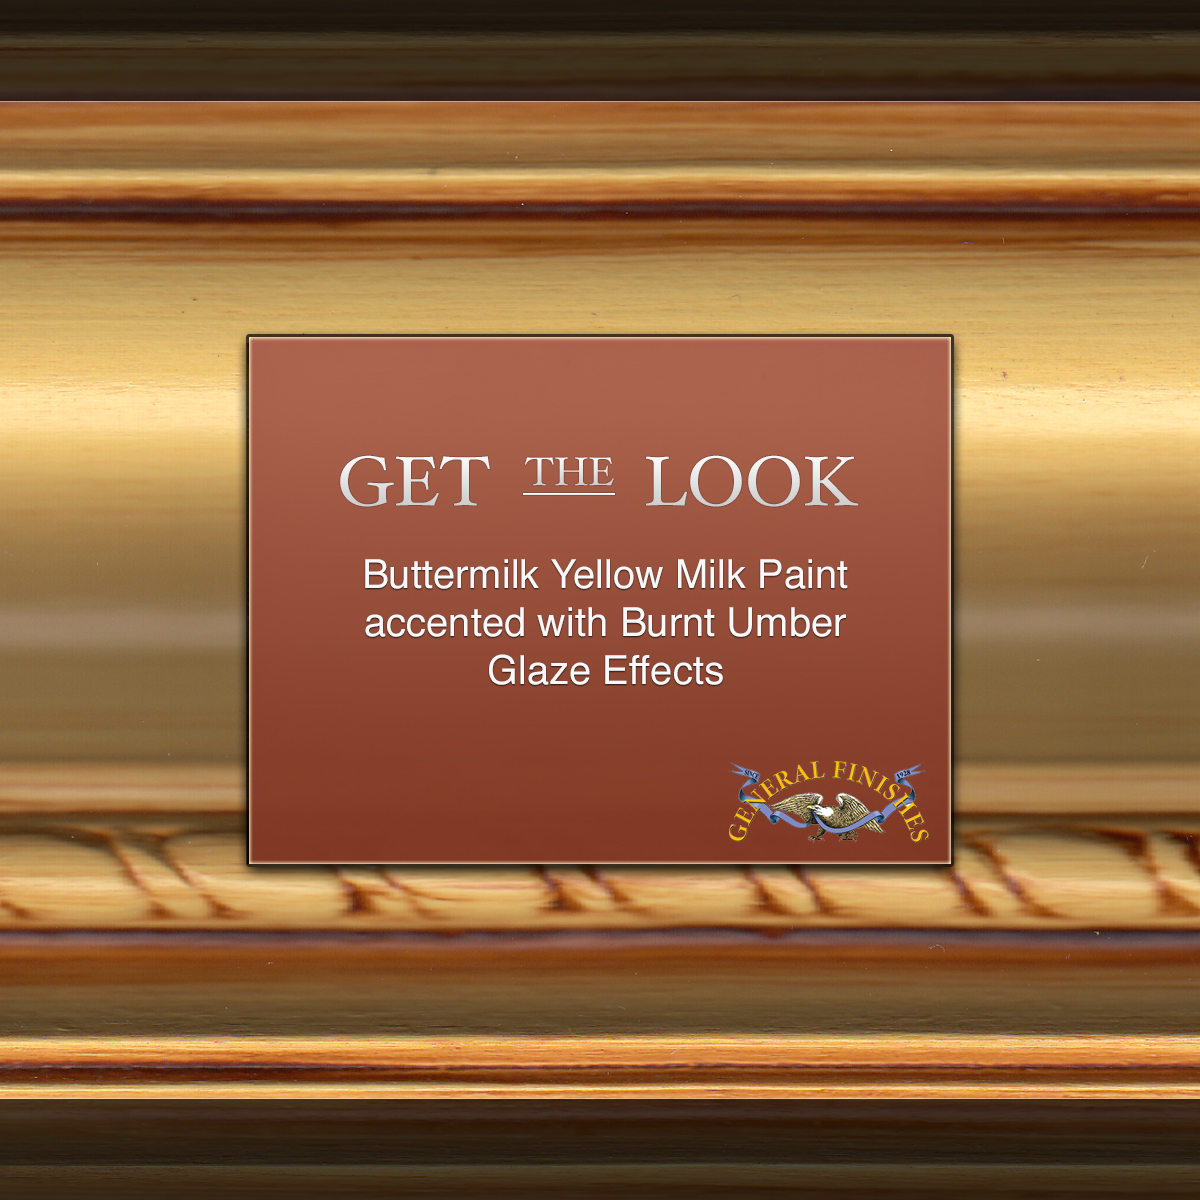 Get The Look Buttermilk Yellow Milk Paint with Burnt